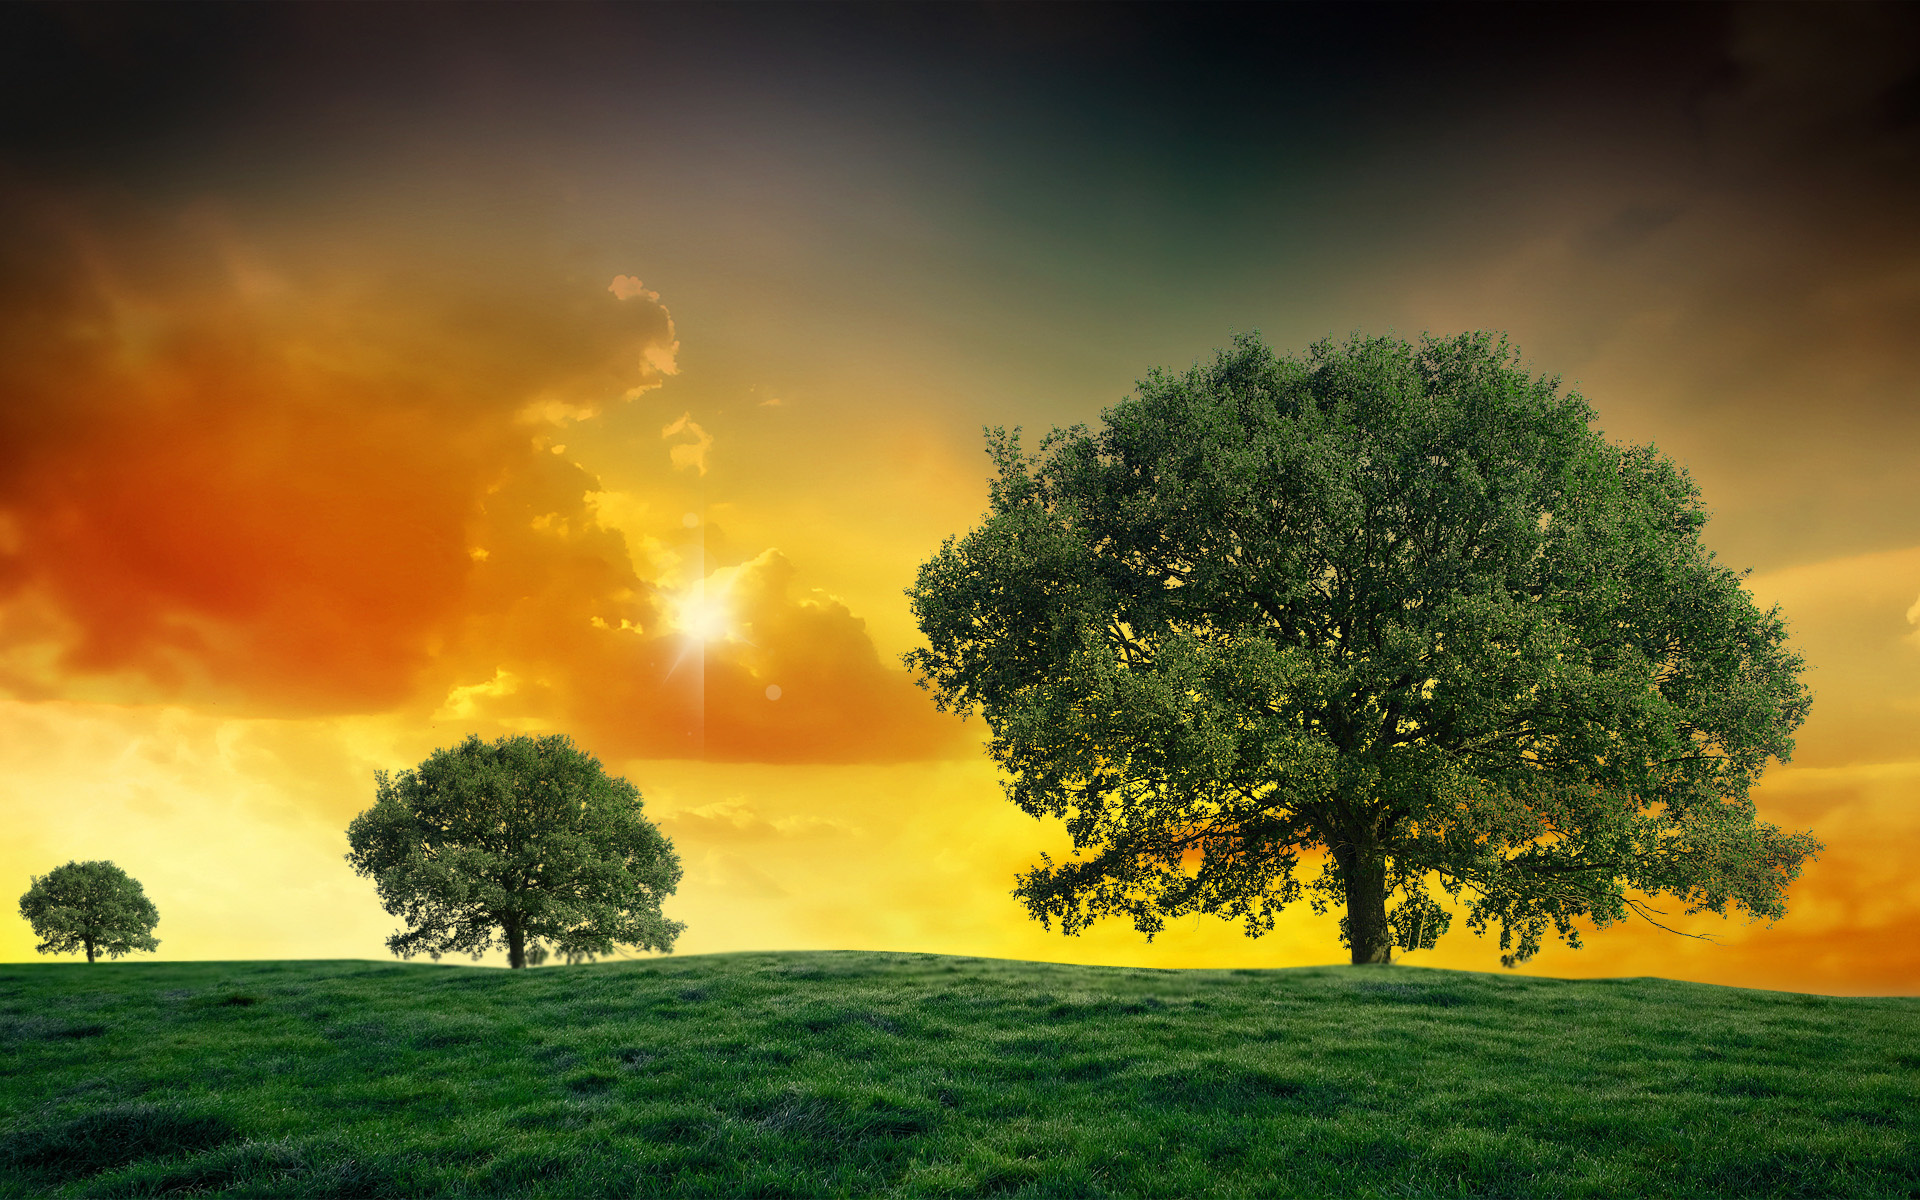 Sunset field trees landscape clouds wallpaper 1920x1200 for Landscape trees